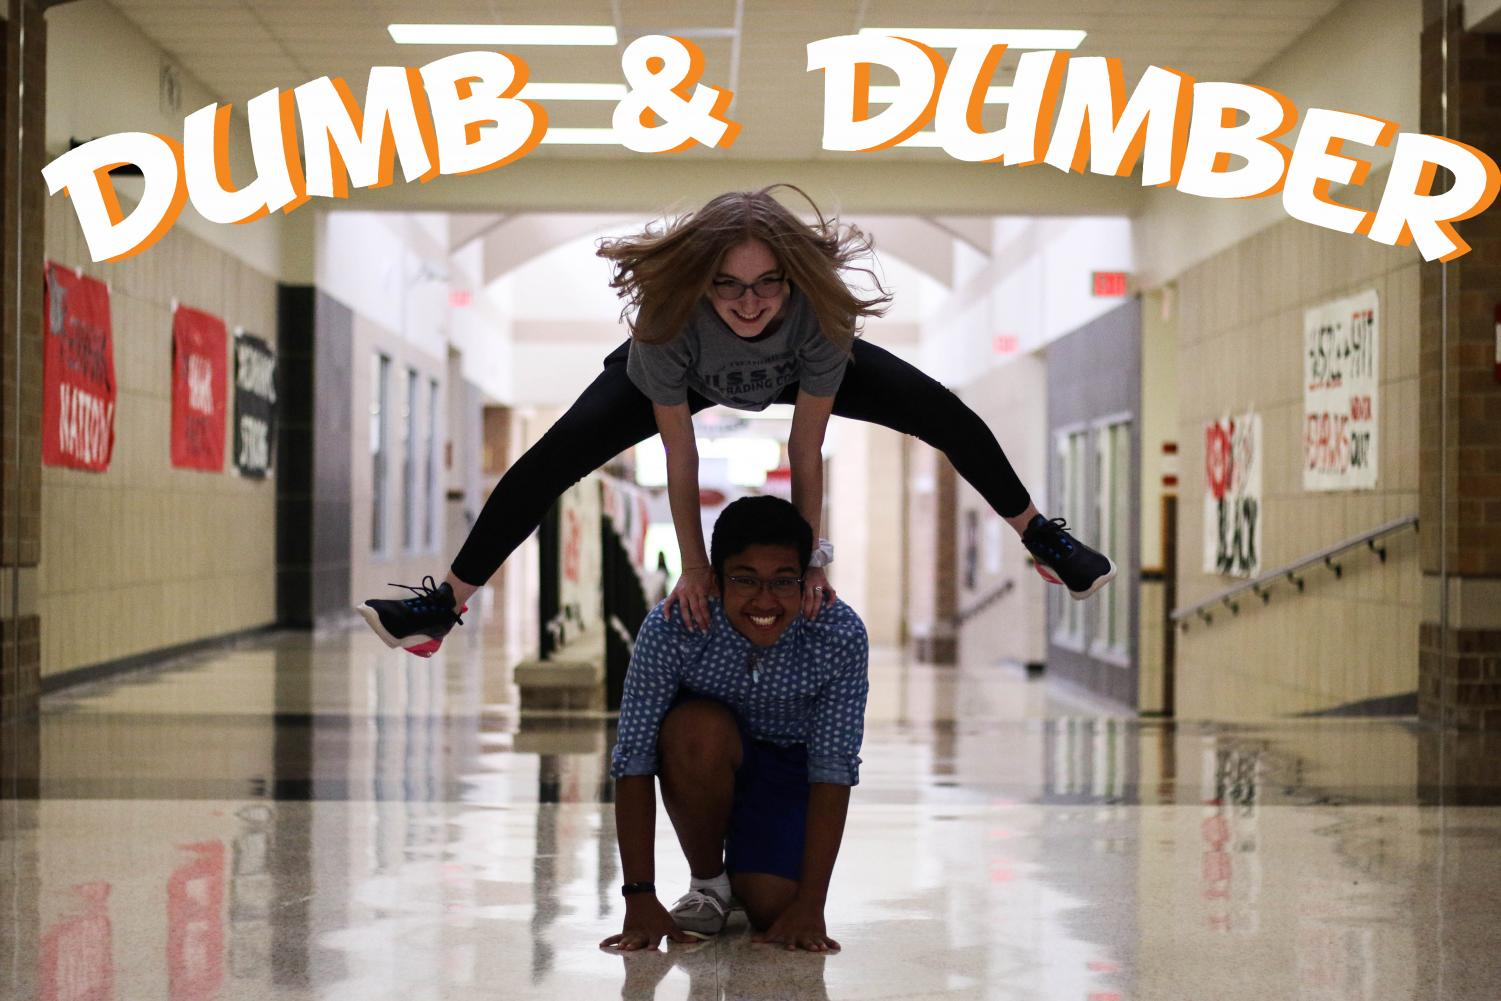 Seniors Emily Vetvick and Michael Martin will discuss anything from shower thoughts to high school in their podcast, Dumb & Dumber.